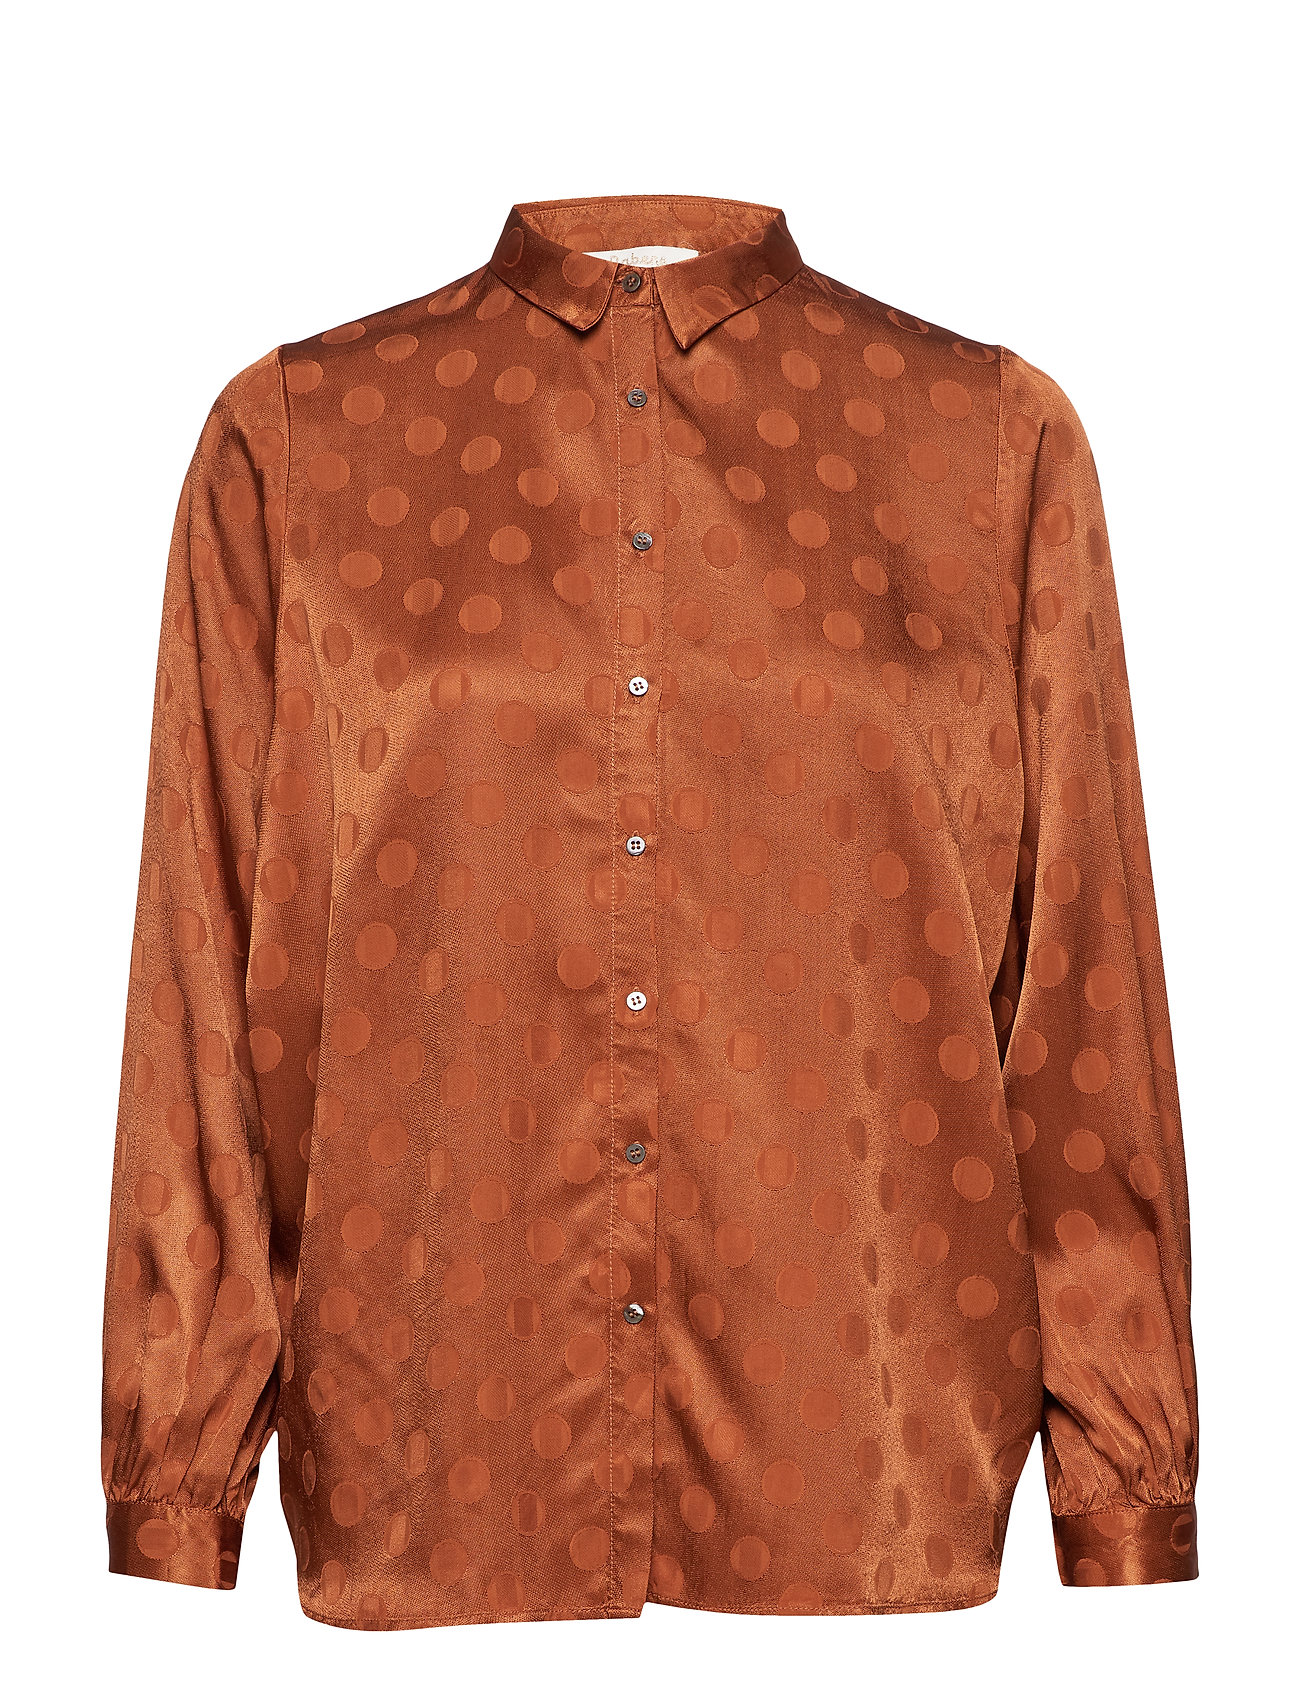 Rabens Saloner Dot jacquard shirt - GLAZED GINGER